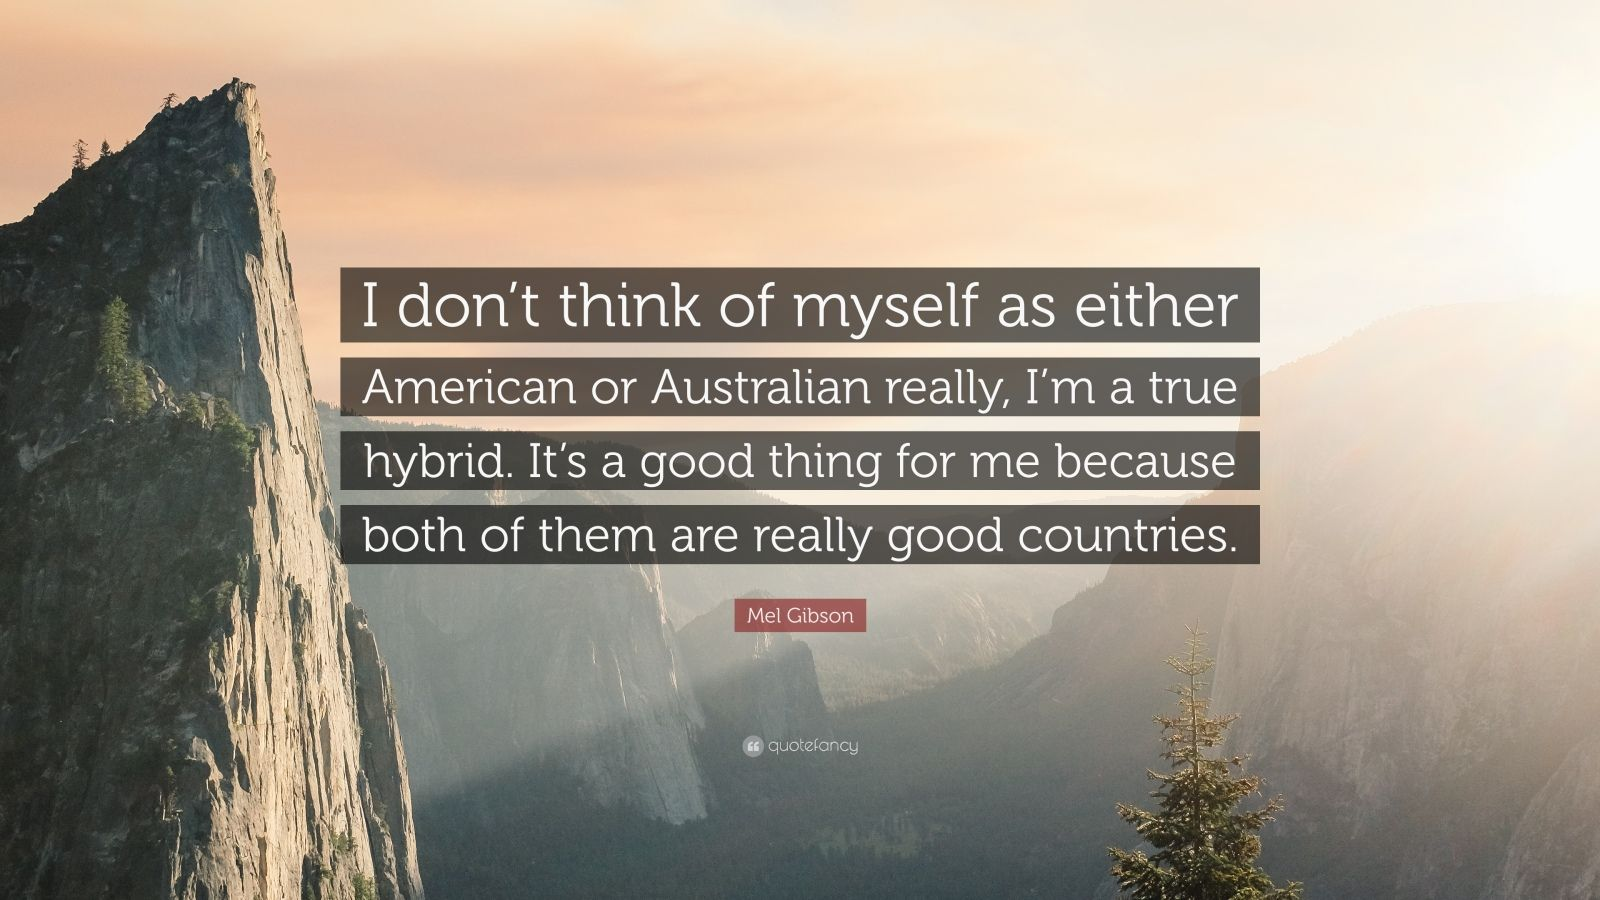 """Mel Gibson Quote: """"I don't think of myself as either American or Australian really, I'm a true hybrid. It's a good thing for me because both of them are really good countries."""""""